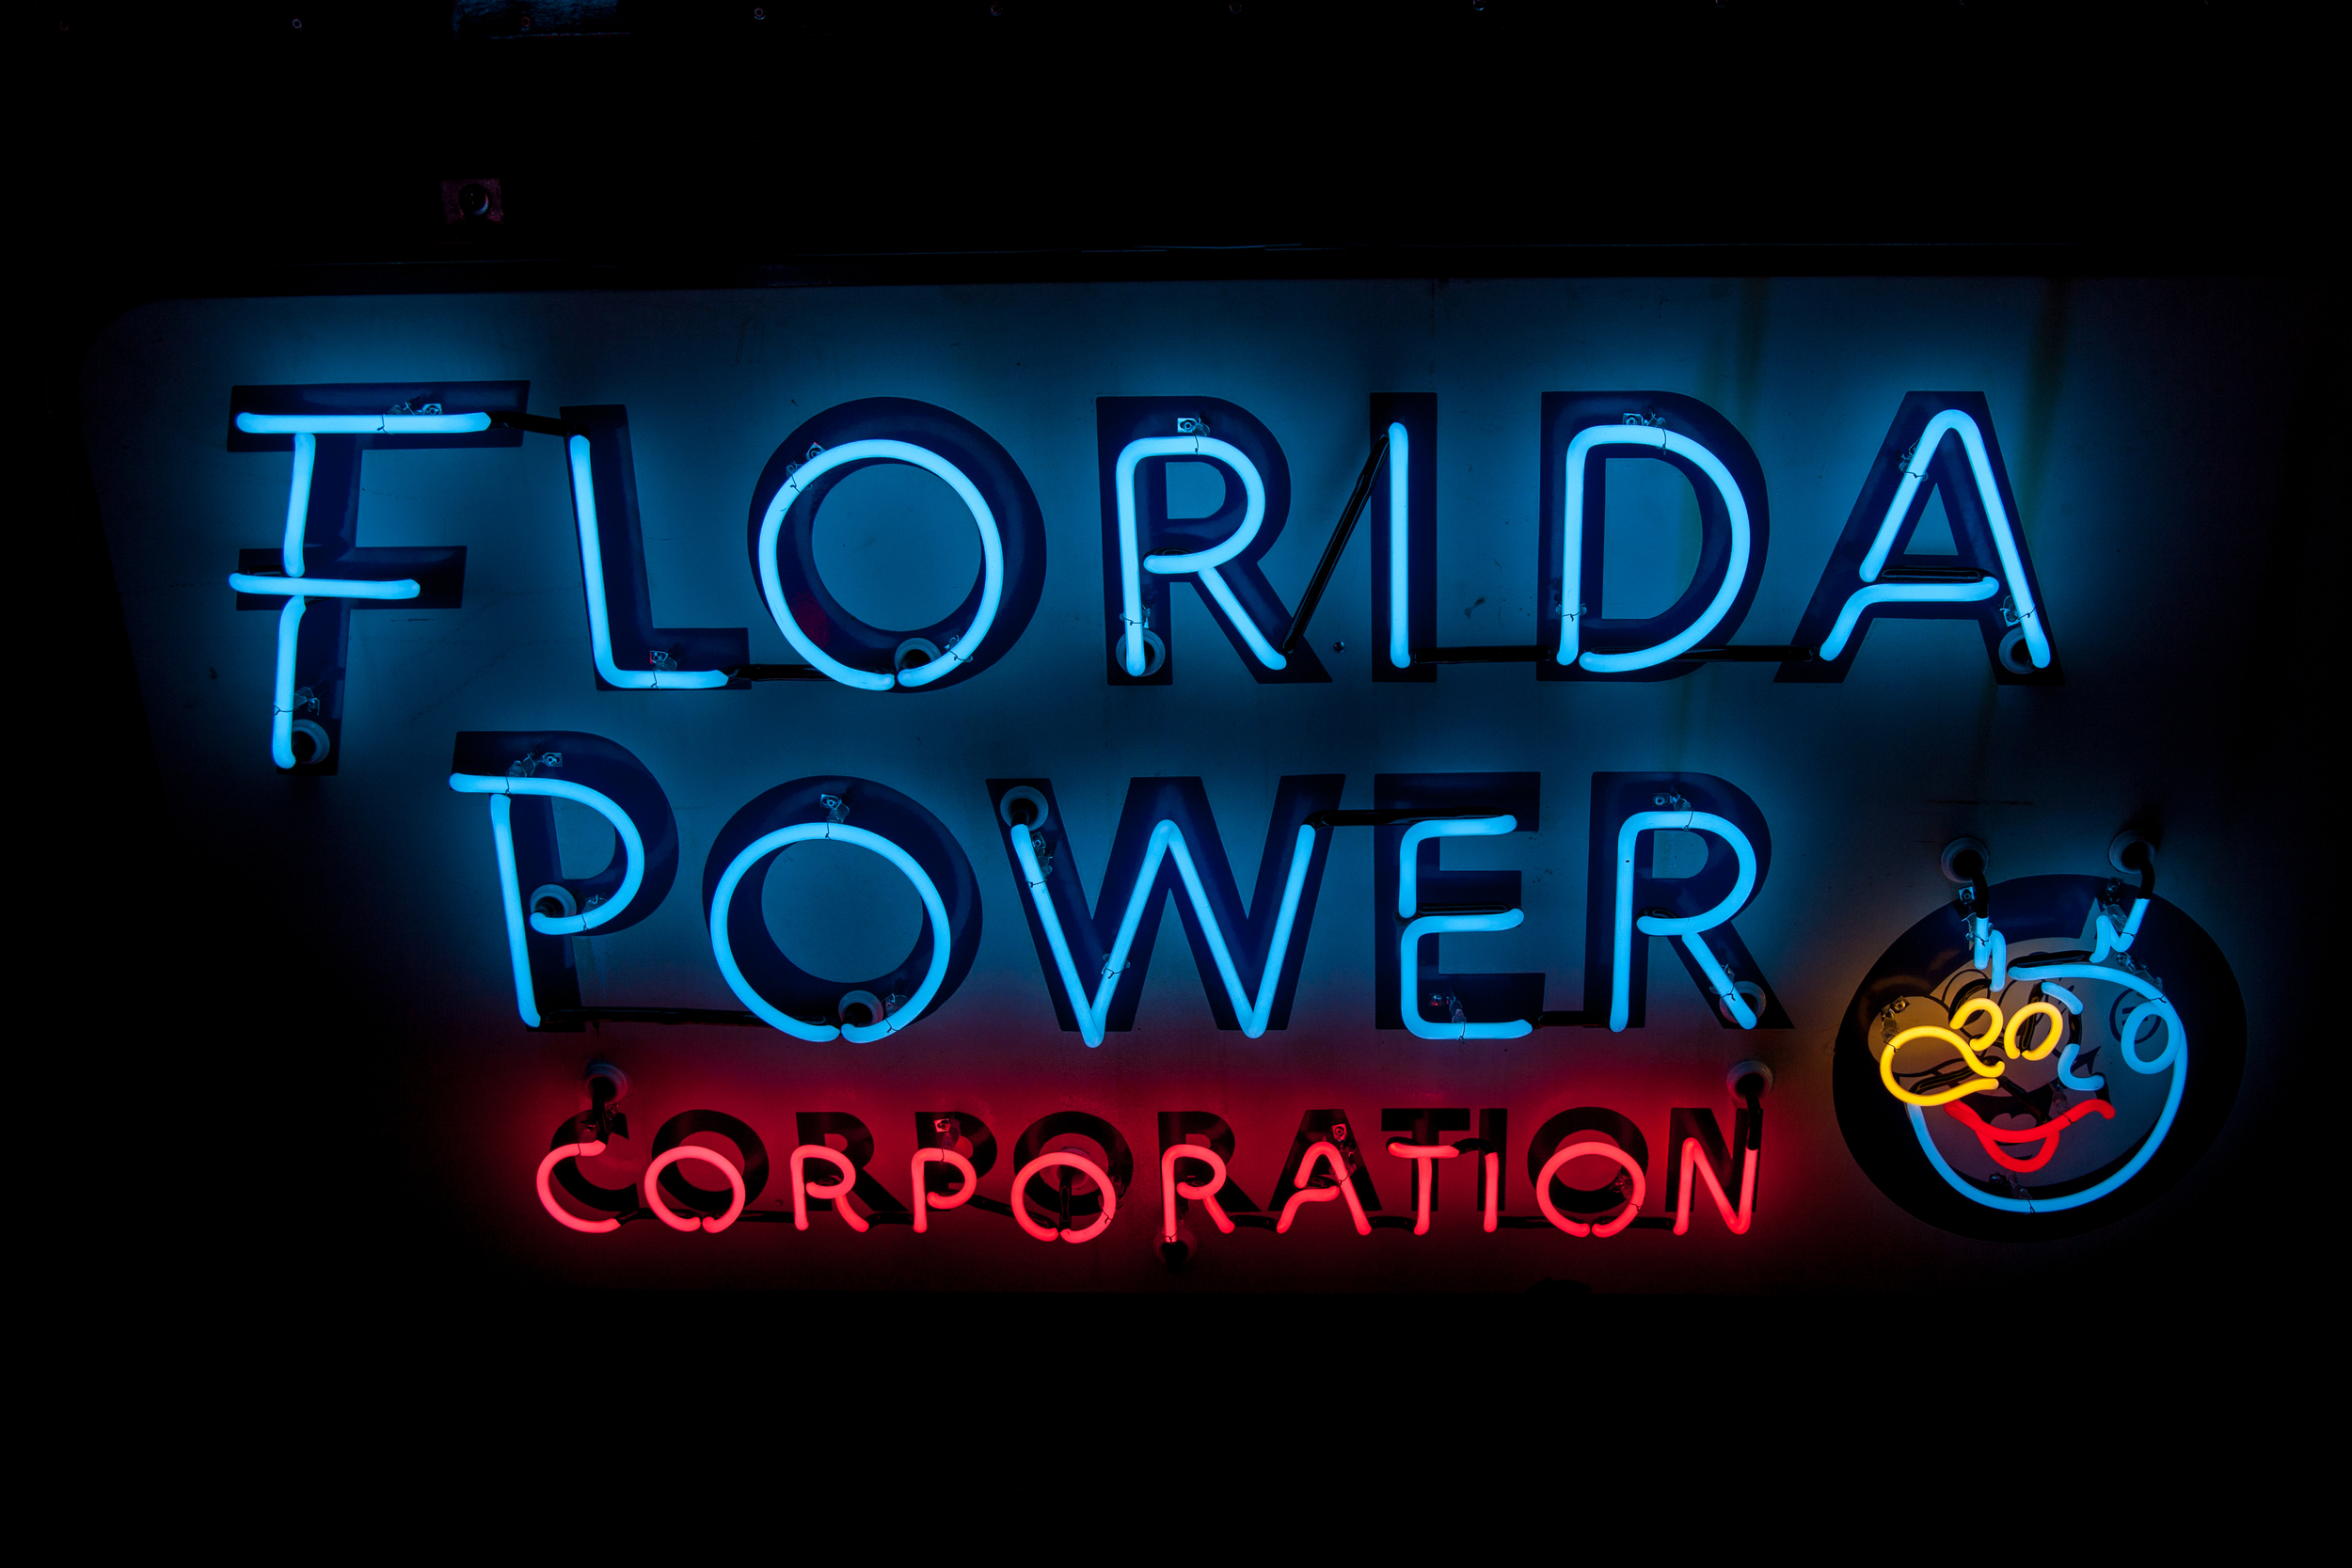 Florida Power Corporation Neon and Porcelain Enamel Sign